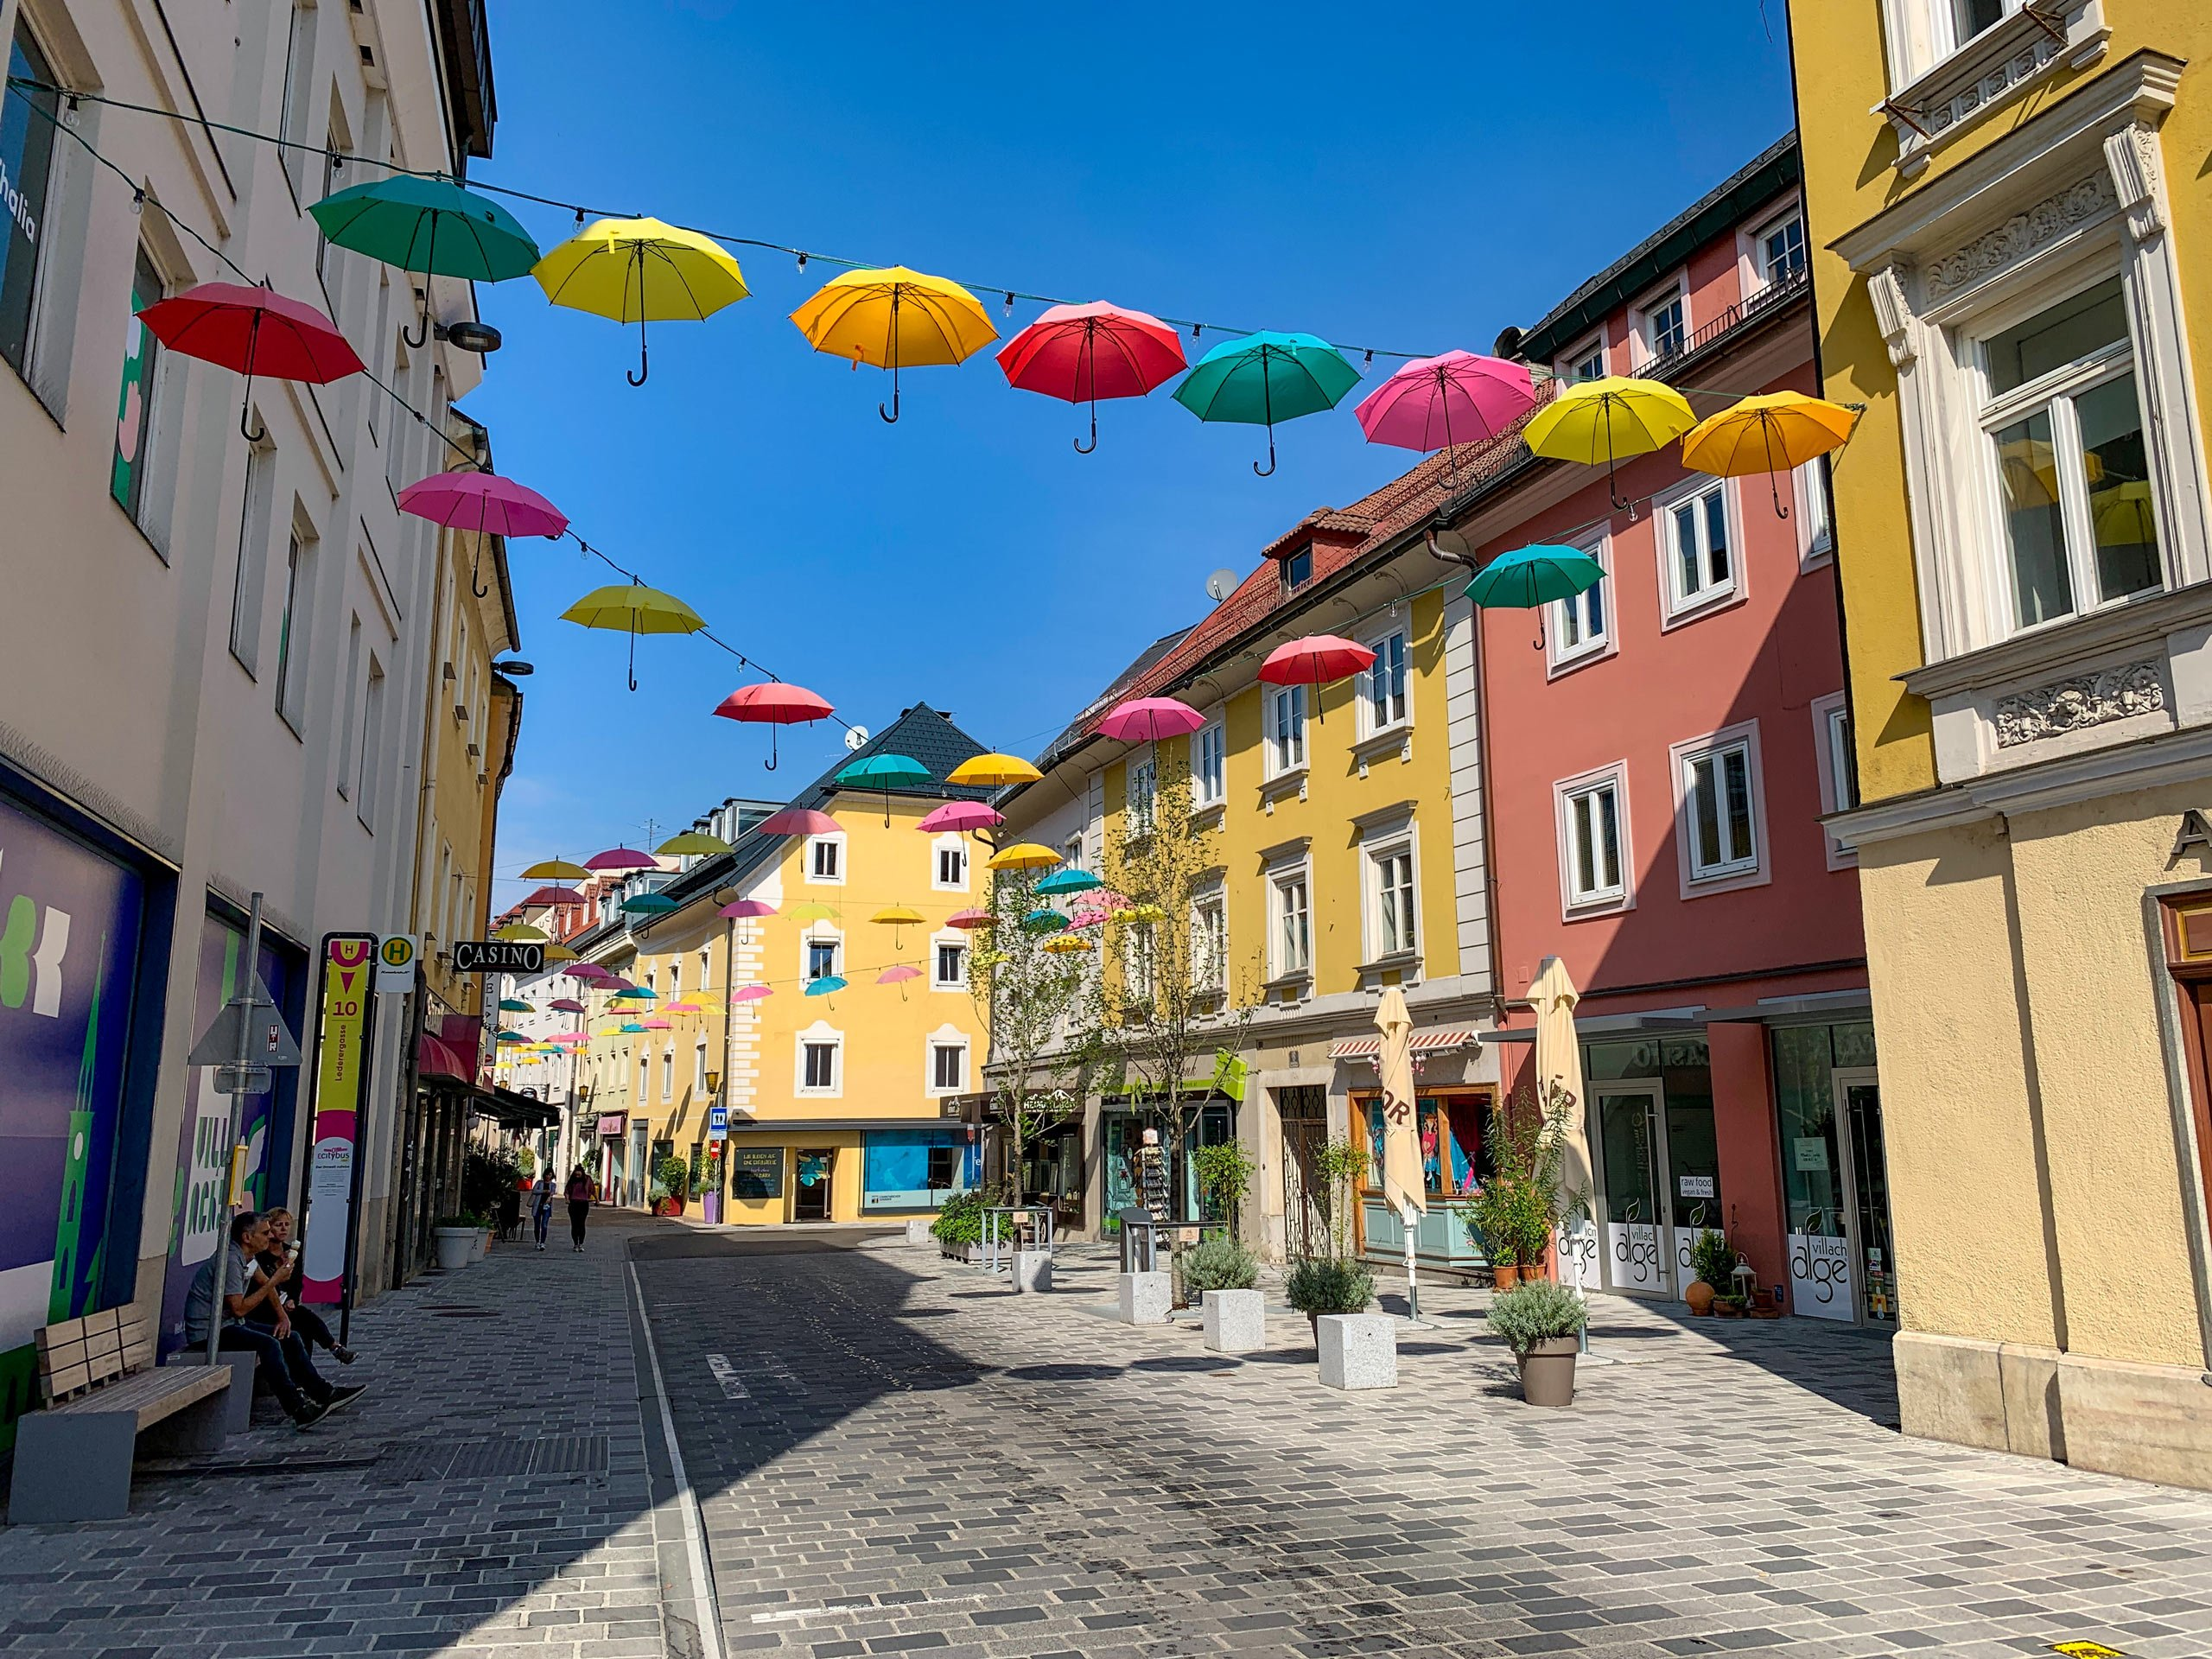 Colourful umbrellas hung over cobblestone street Villach town in Austria